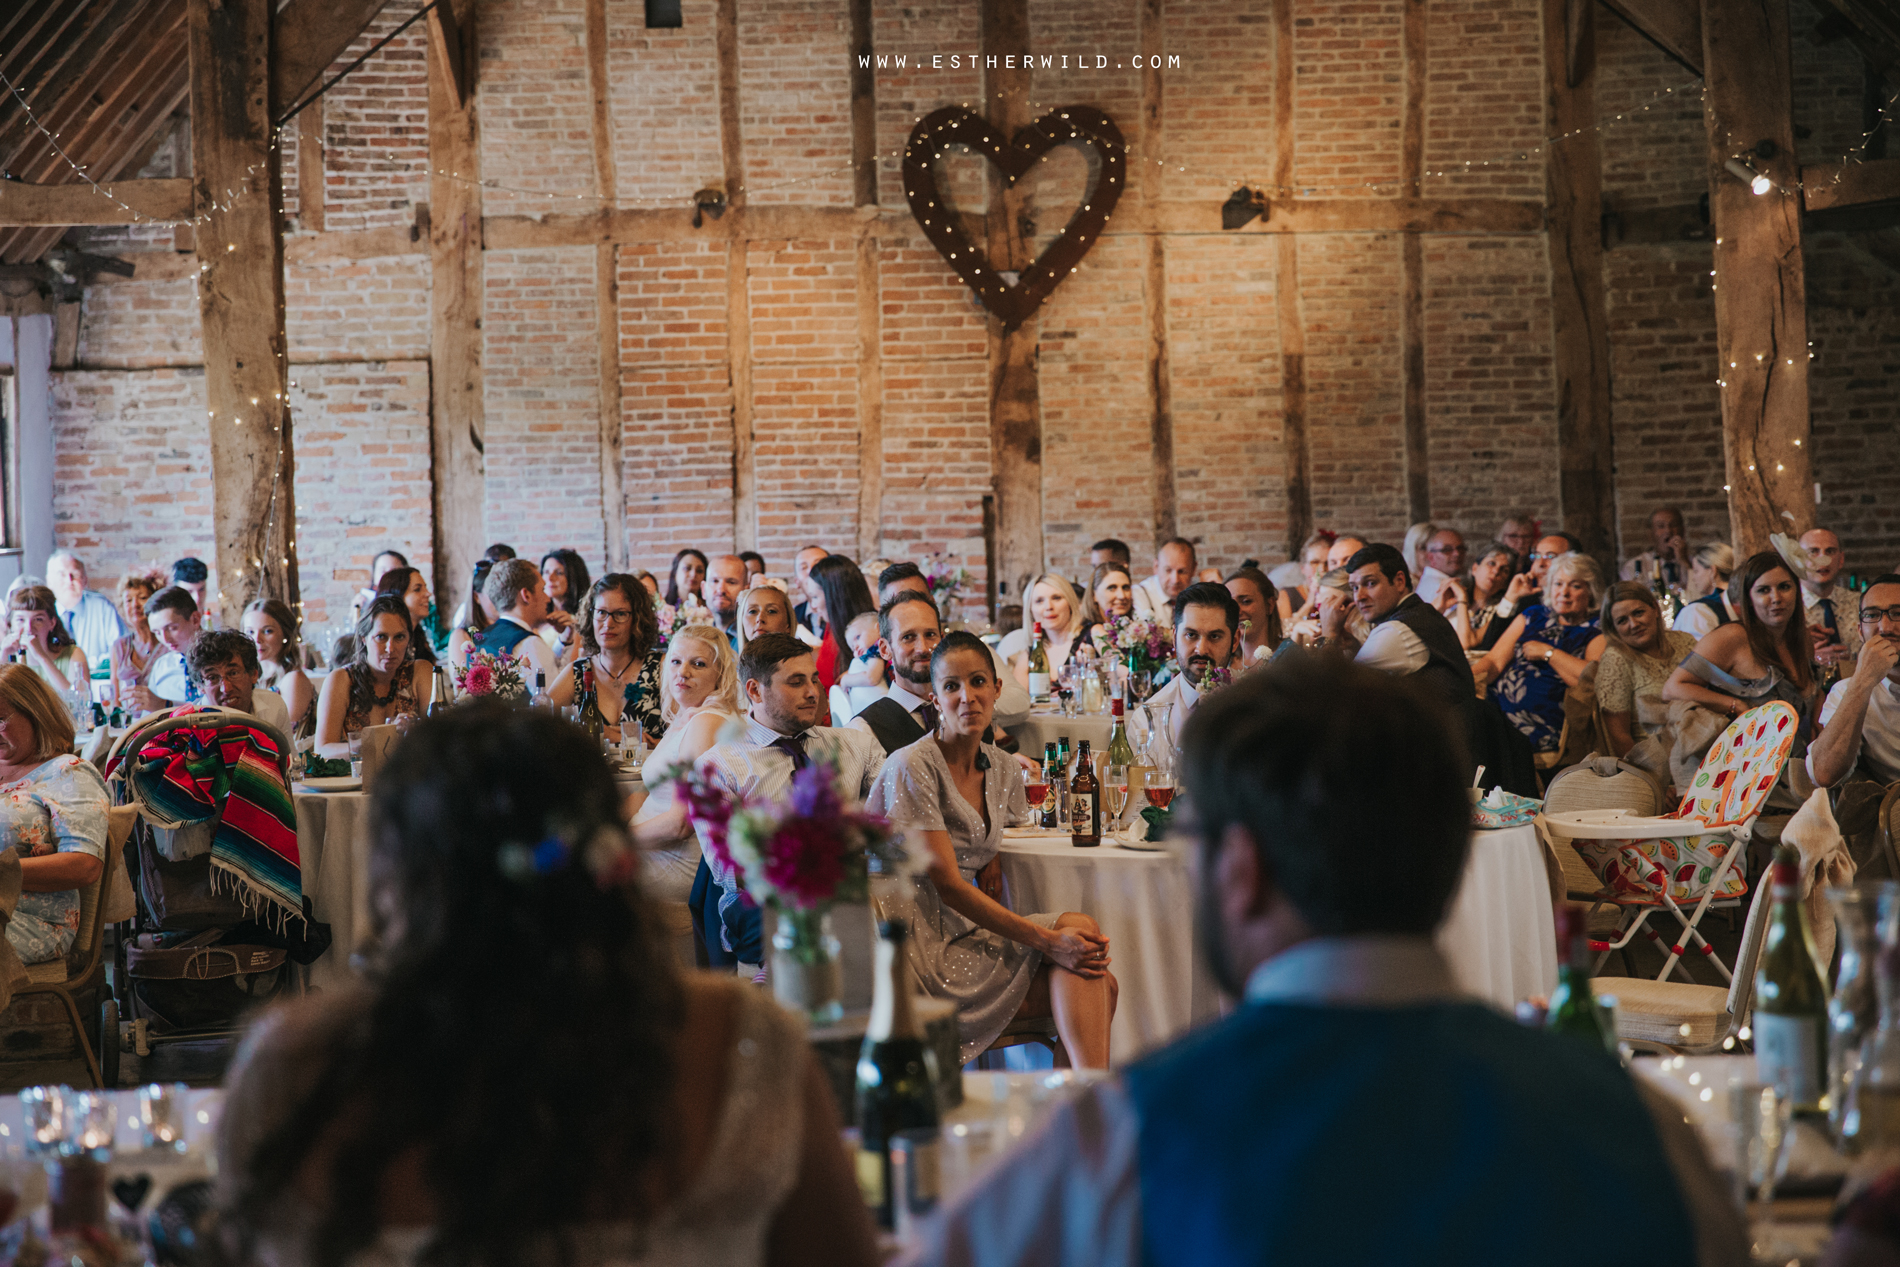 The_Red_Barn_Wedding_Kings_Lynn_Norfolk_IMG_1758.jpg